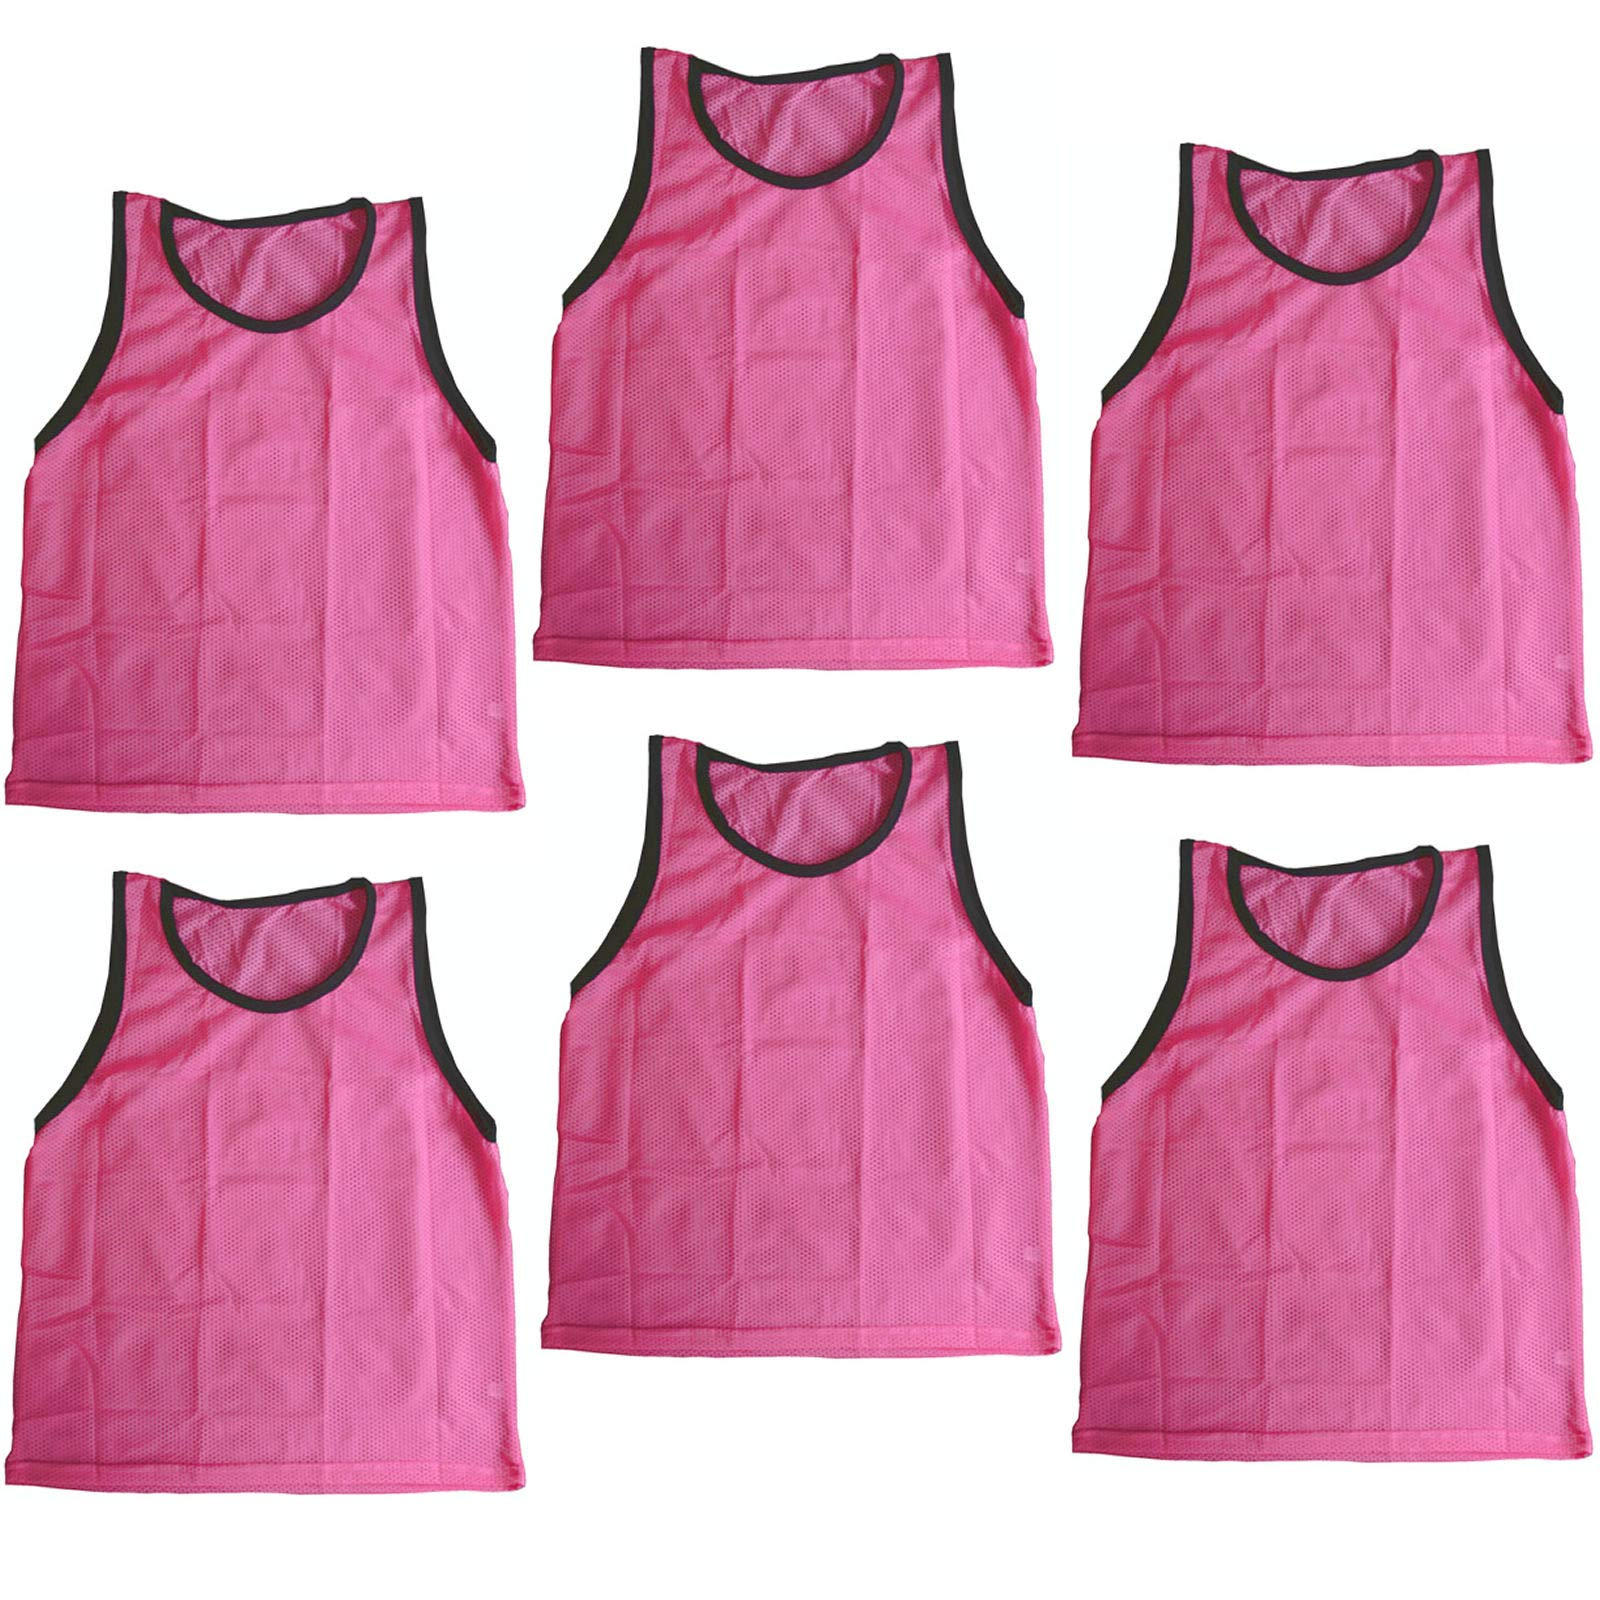 Bright Sun 6 pcs Scrimmage Vests Pinnies Soccer Youth Pink #BDMN by Bright Sun